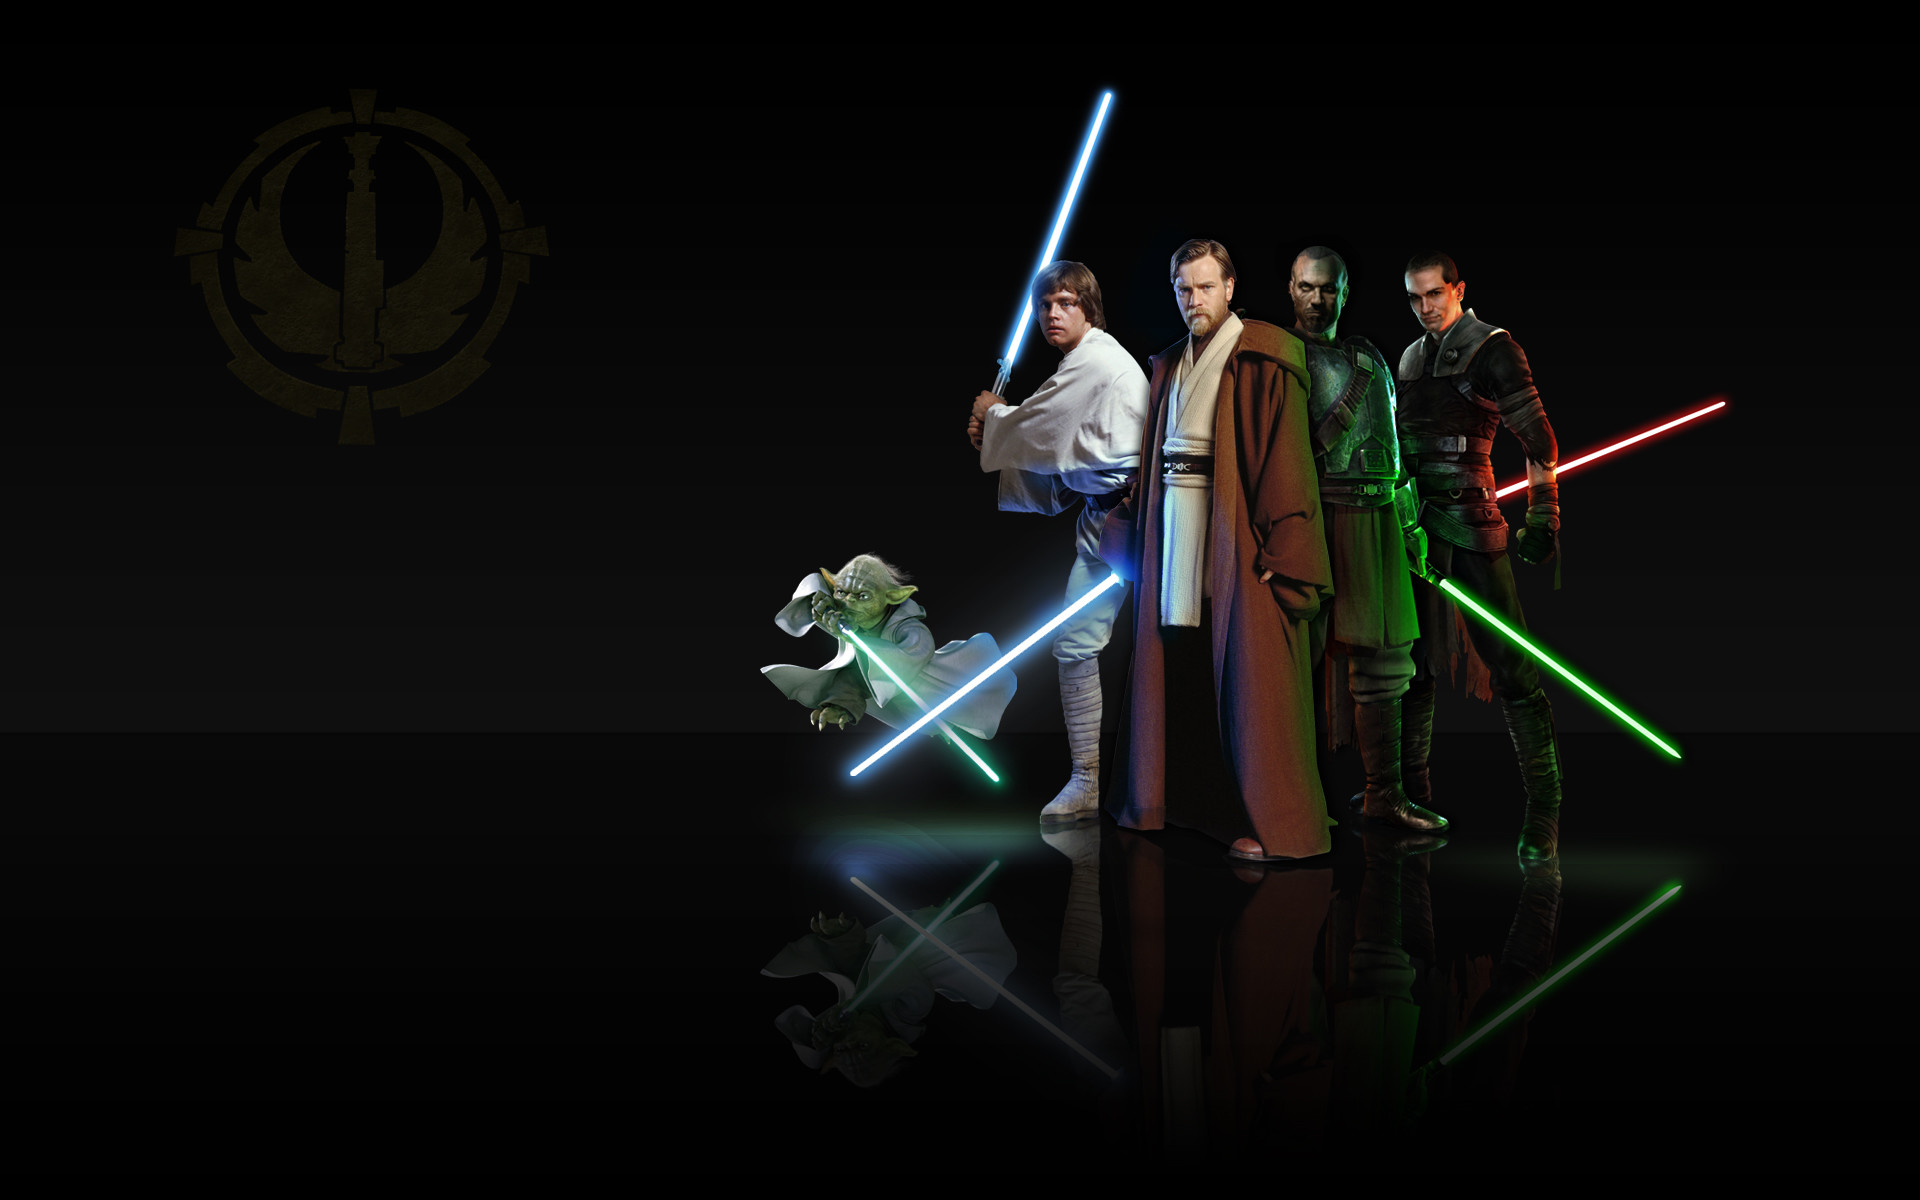 Quick Wallpaper during my break, of my favorite Jedi's. Can't really find  any cool wallpaper of Star Wars, so if you have a large sc.